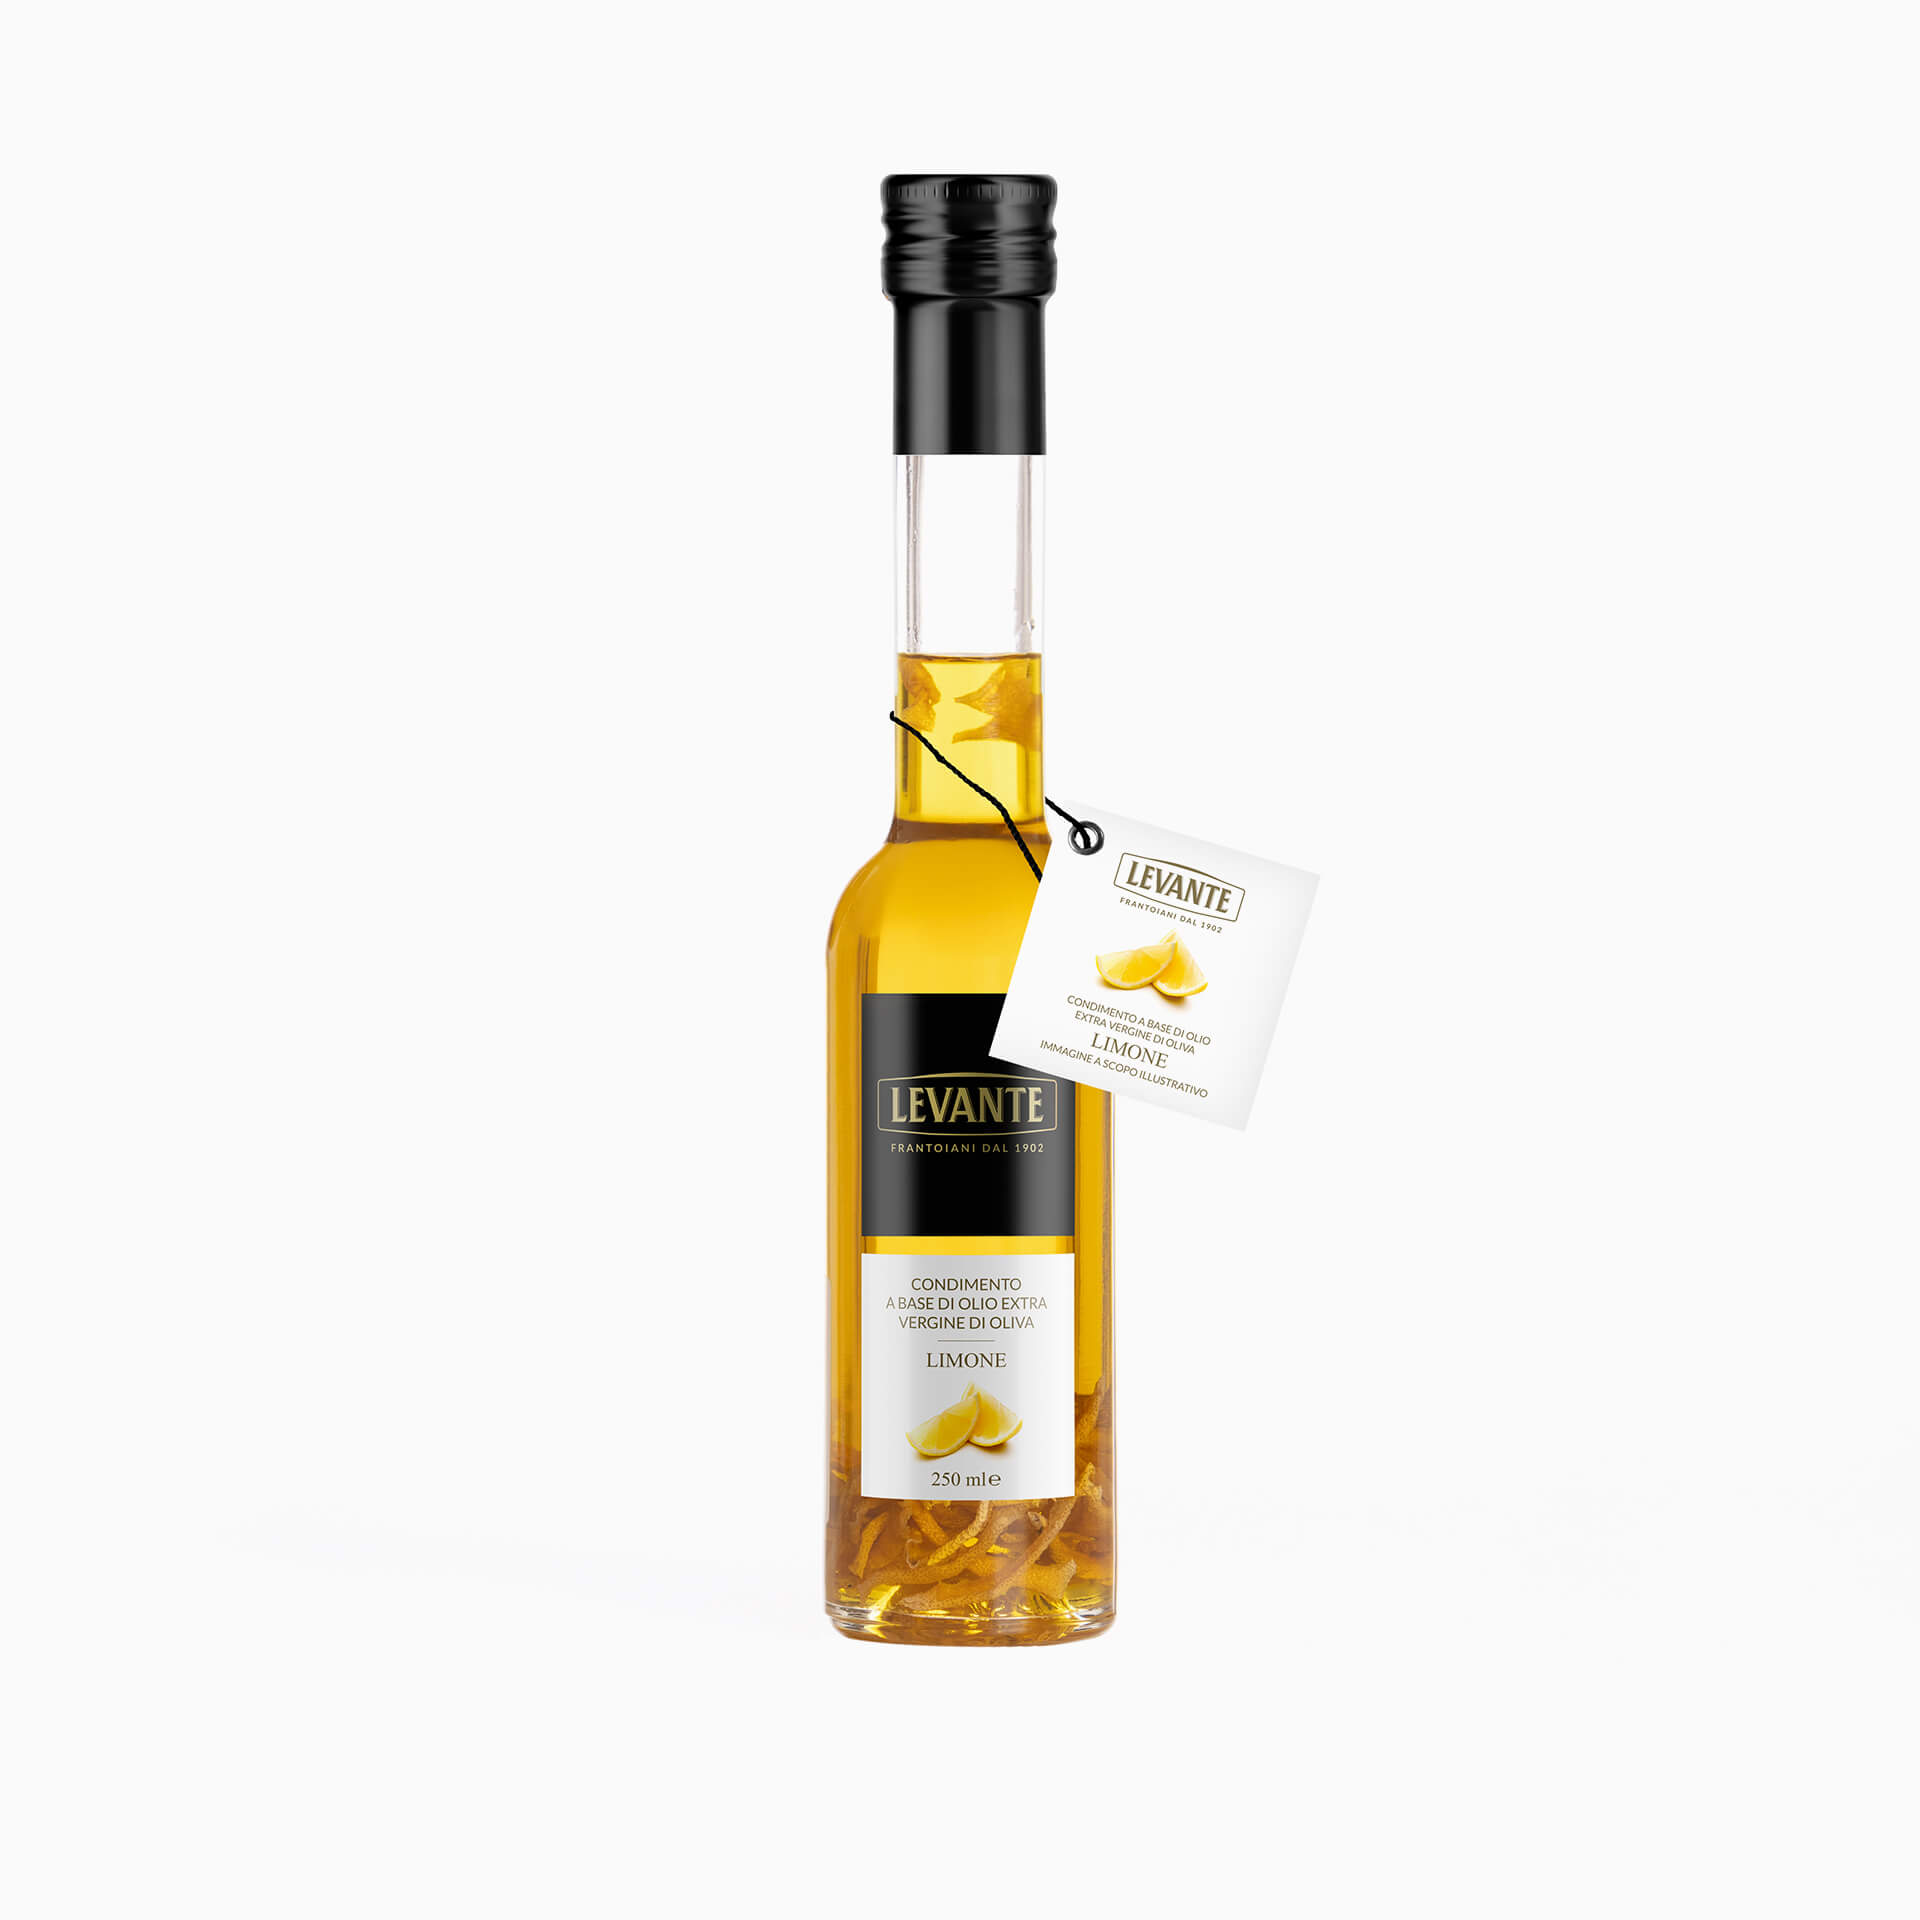 Extra Virgin Olive Oil flavoured with Lemon